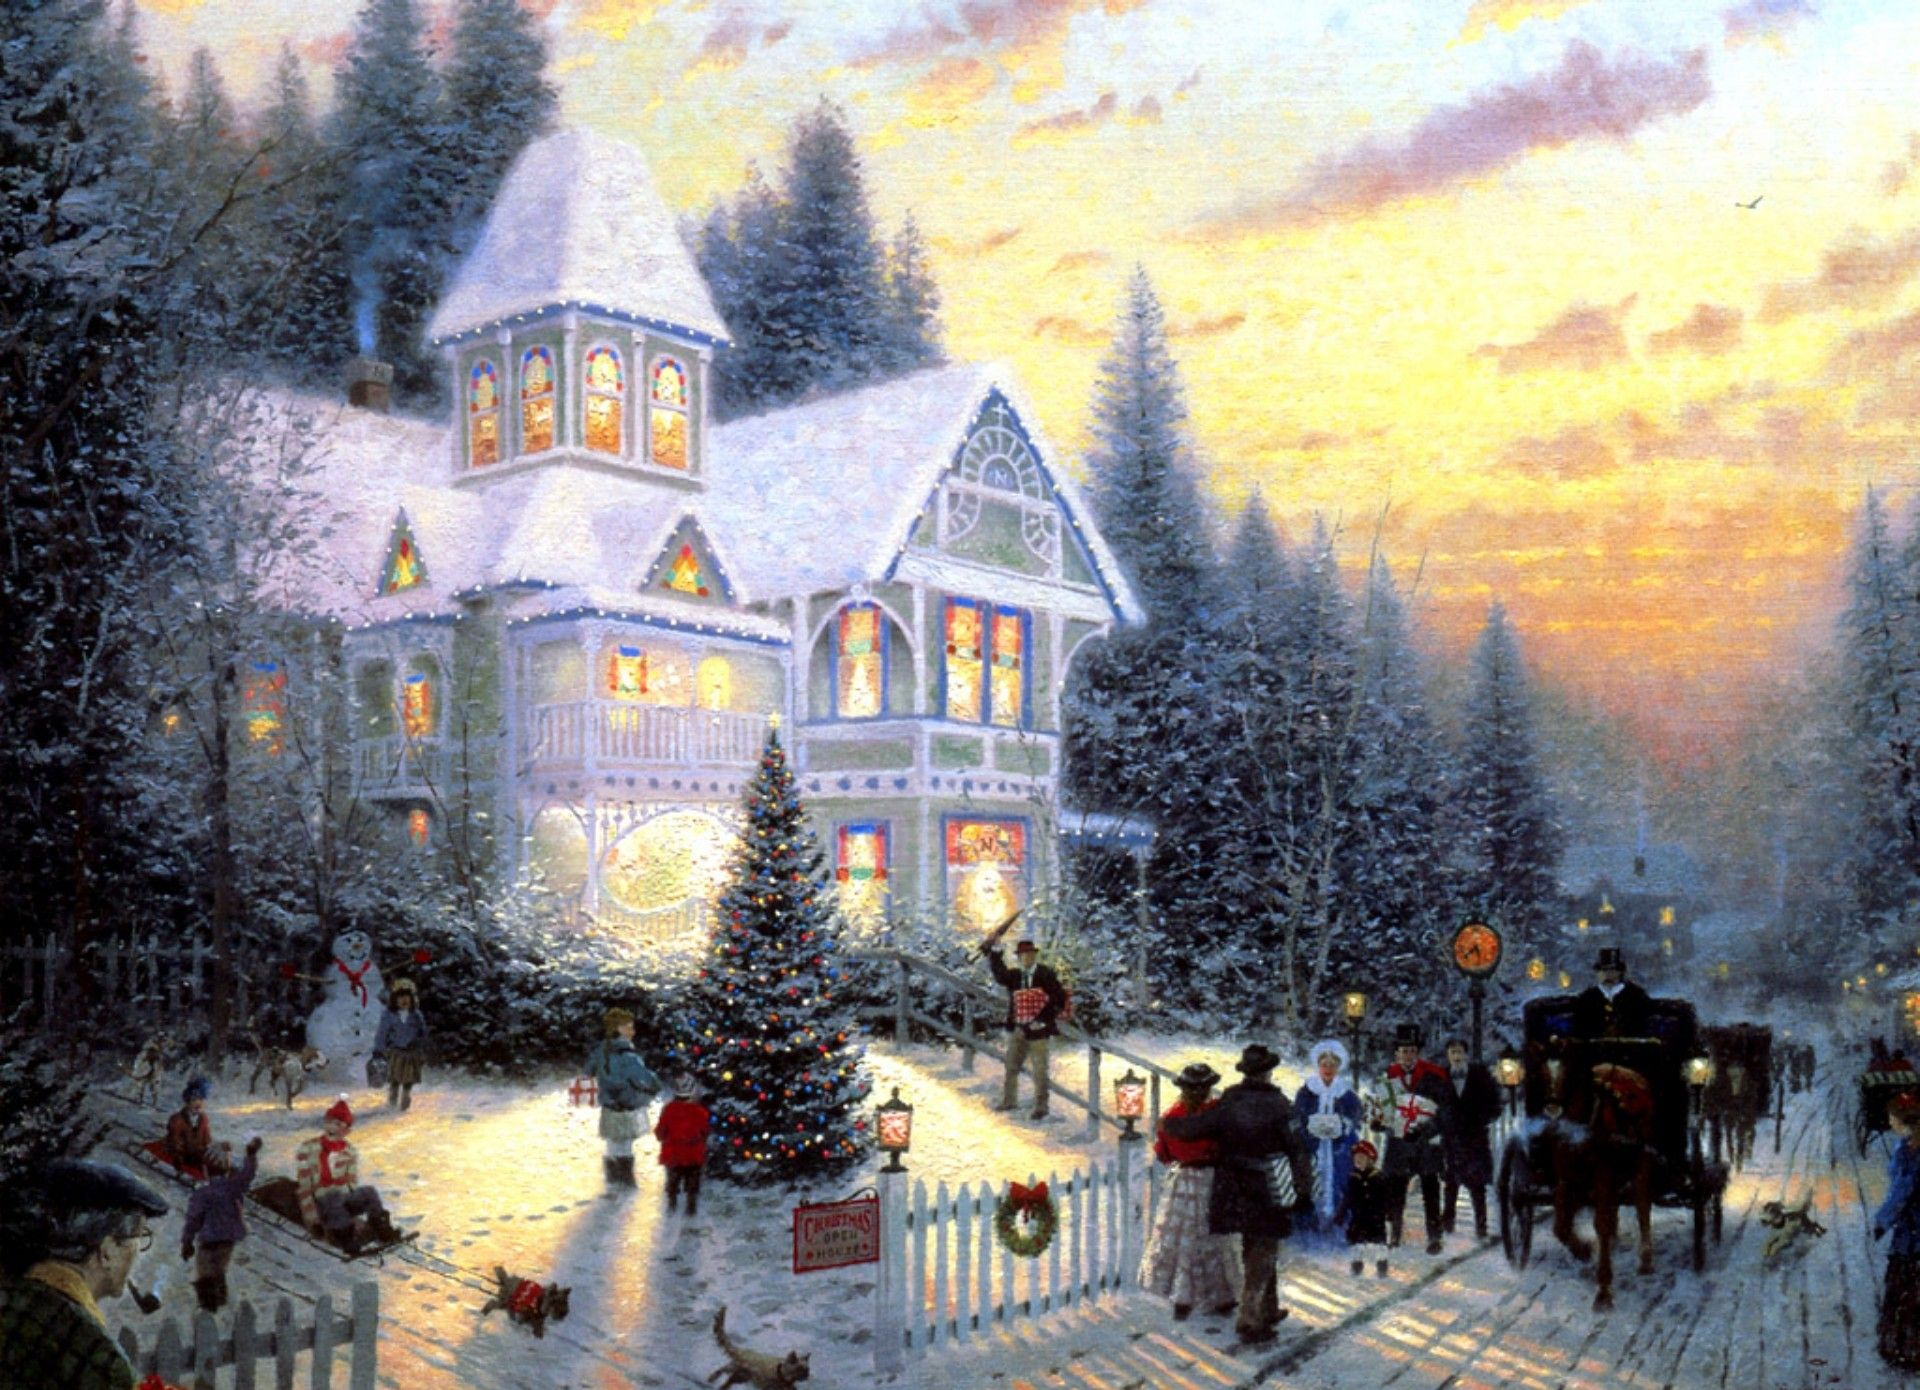 Cool-christmas-holiday-picture-Lyndon-Backer-1920-x-wallpaper-wpc5803666